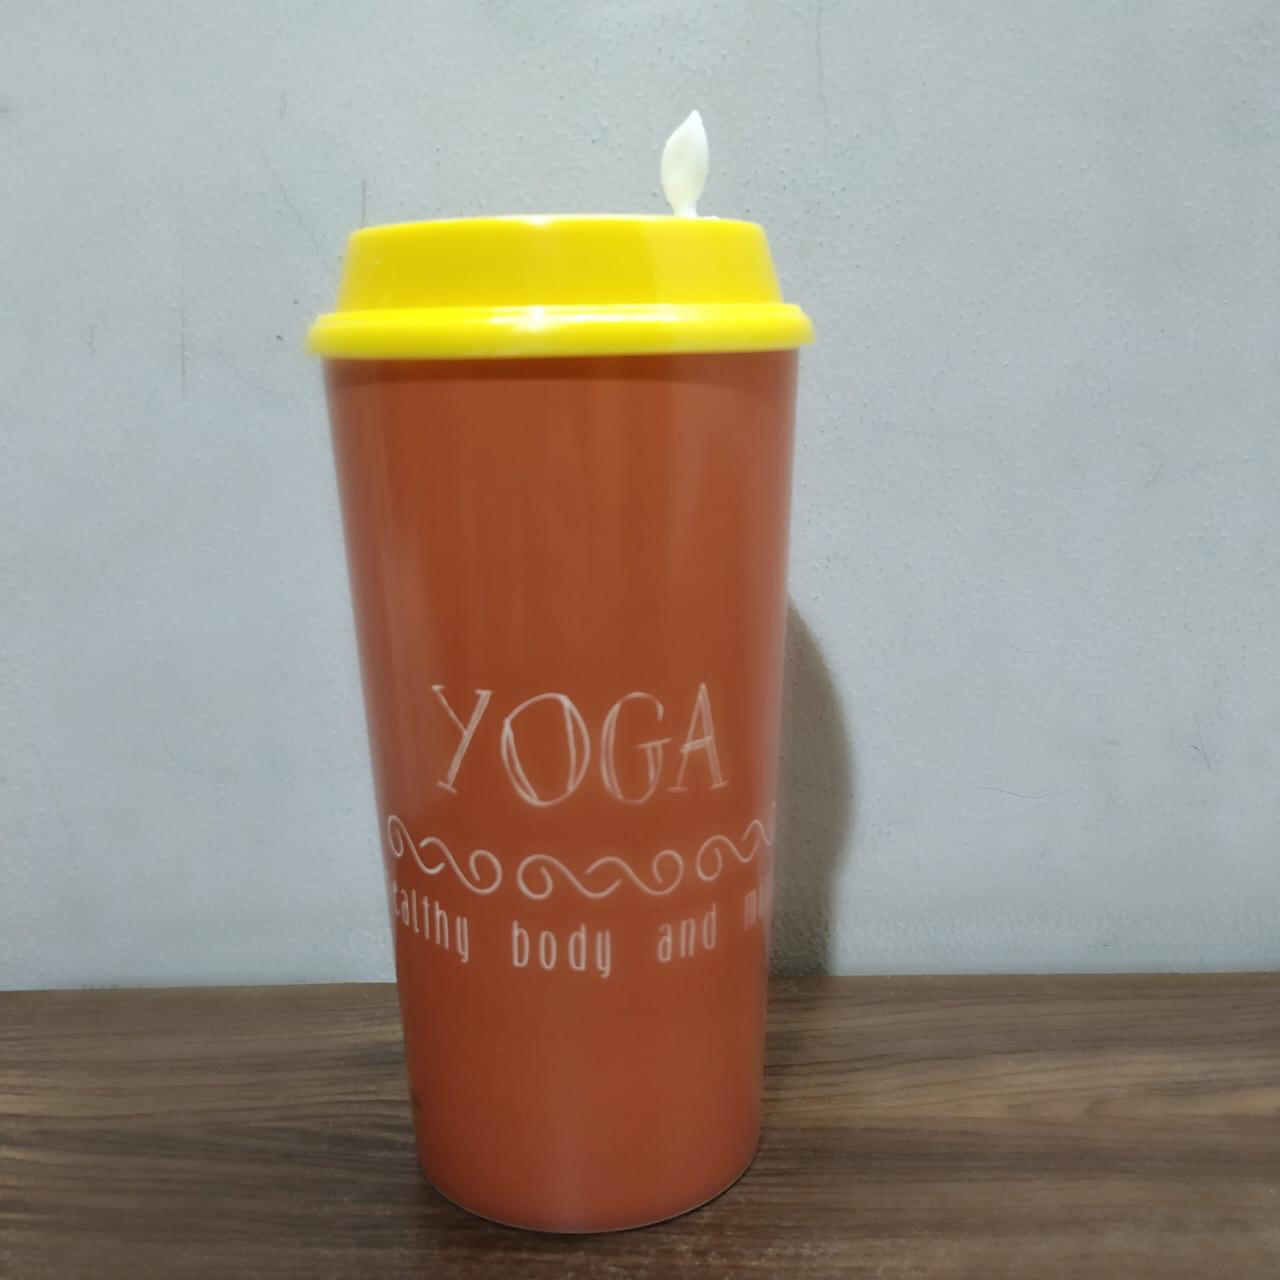 Designer Cup by Chirpy Cups with coffee & sipper lids, Food Safe, BPA Free, Recyclable - Yoga